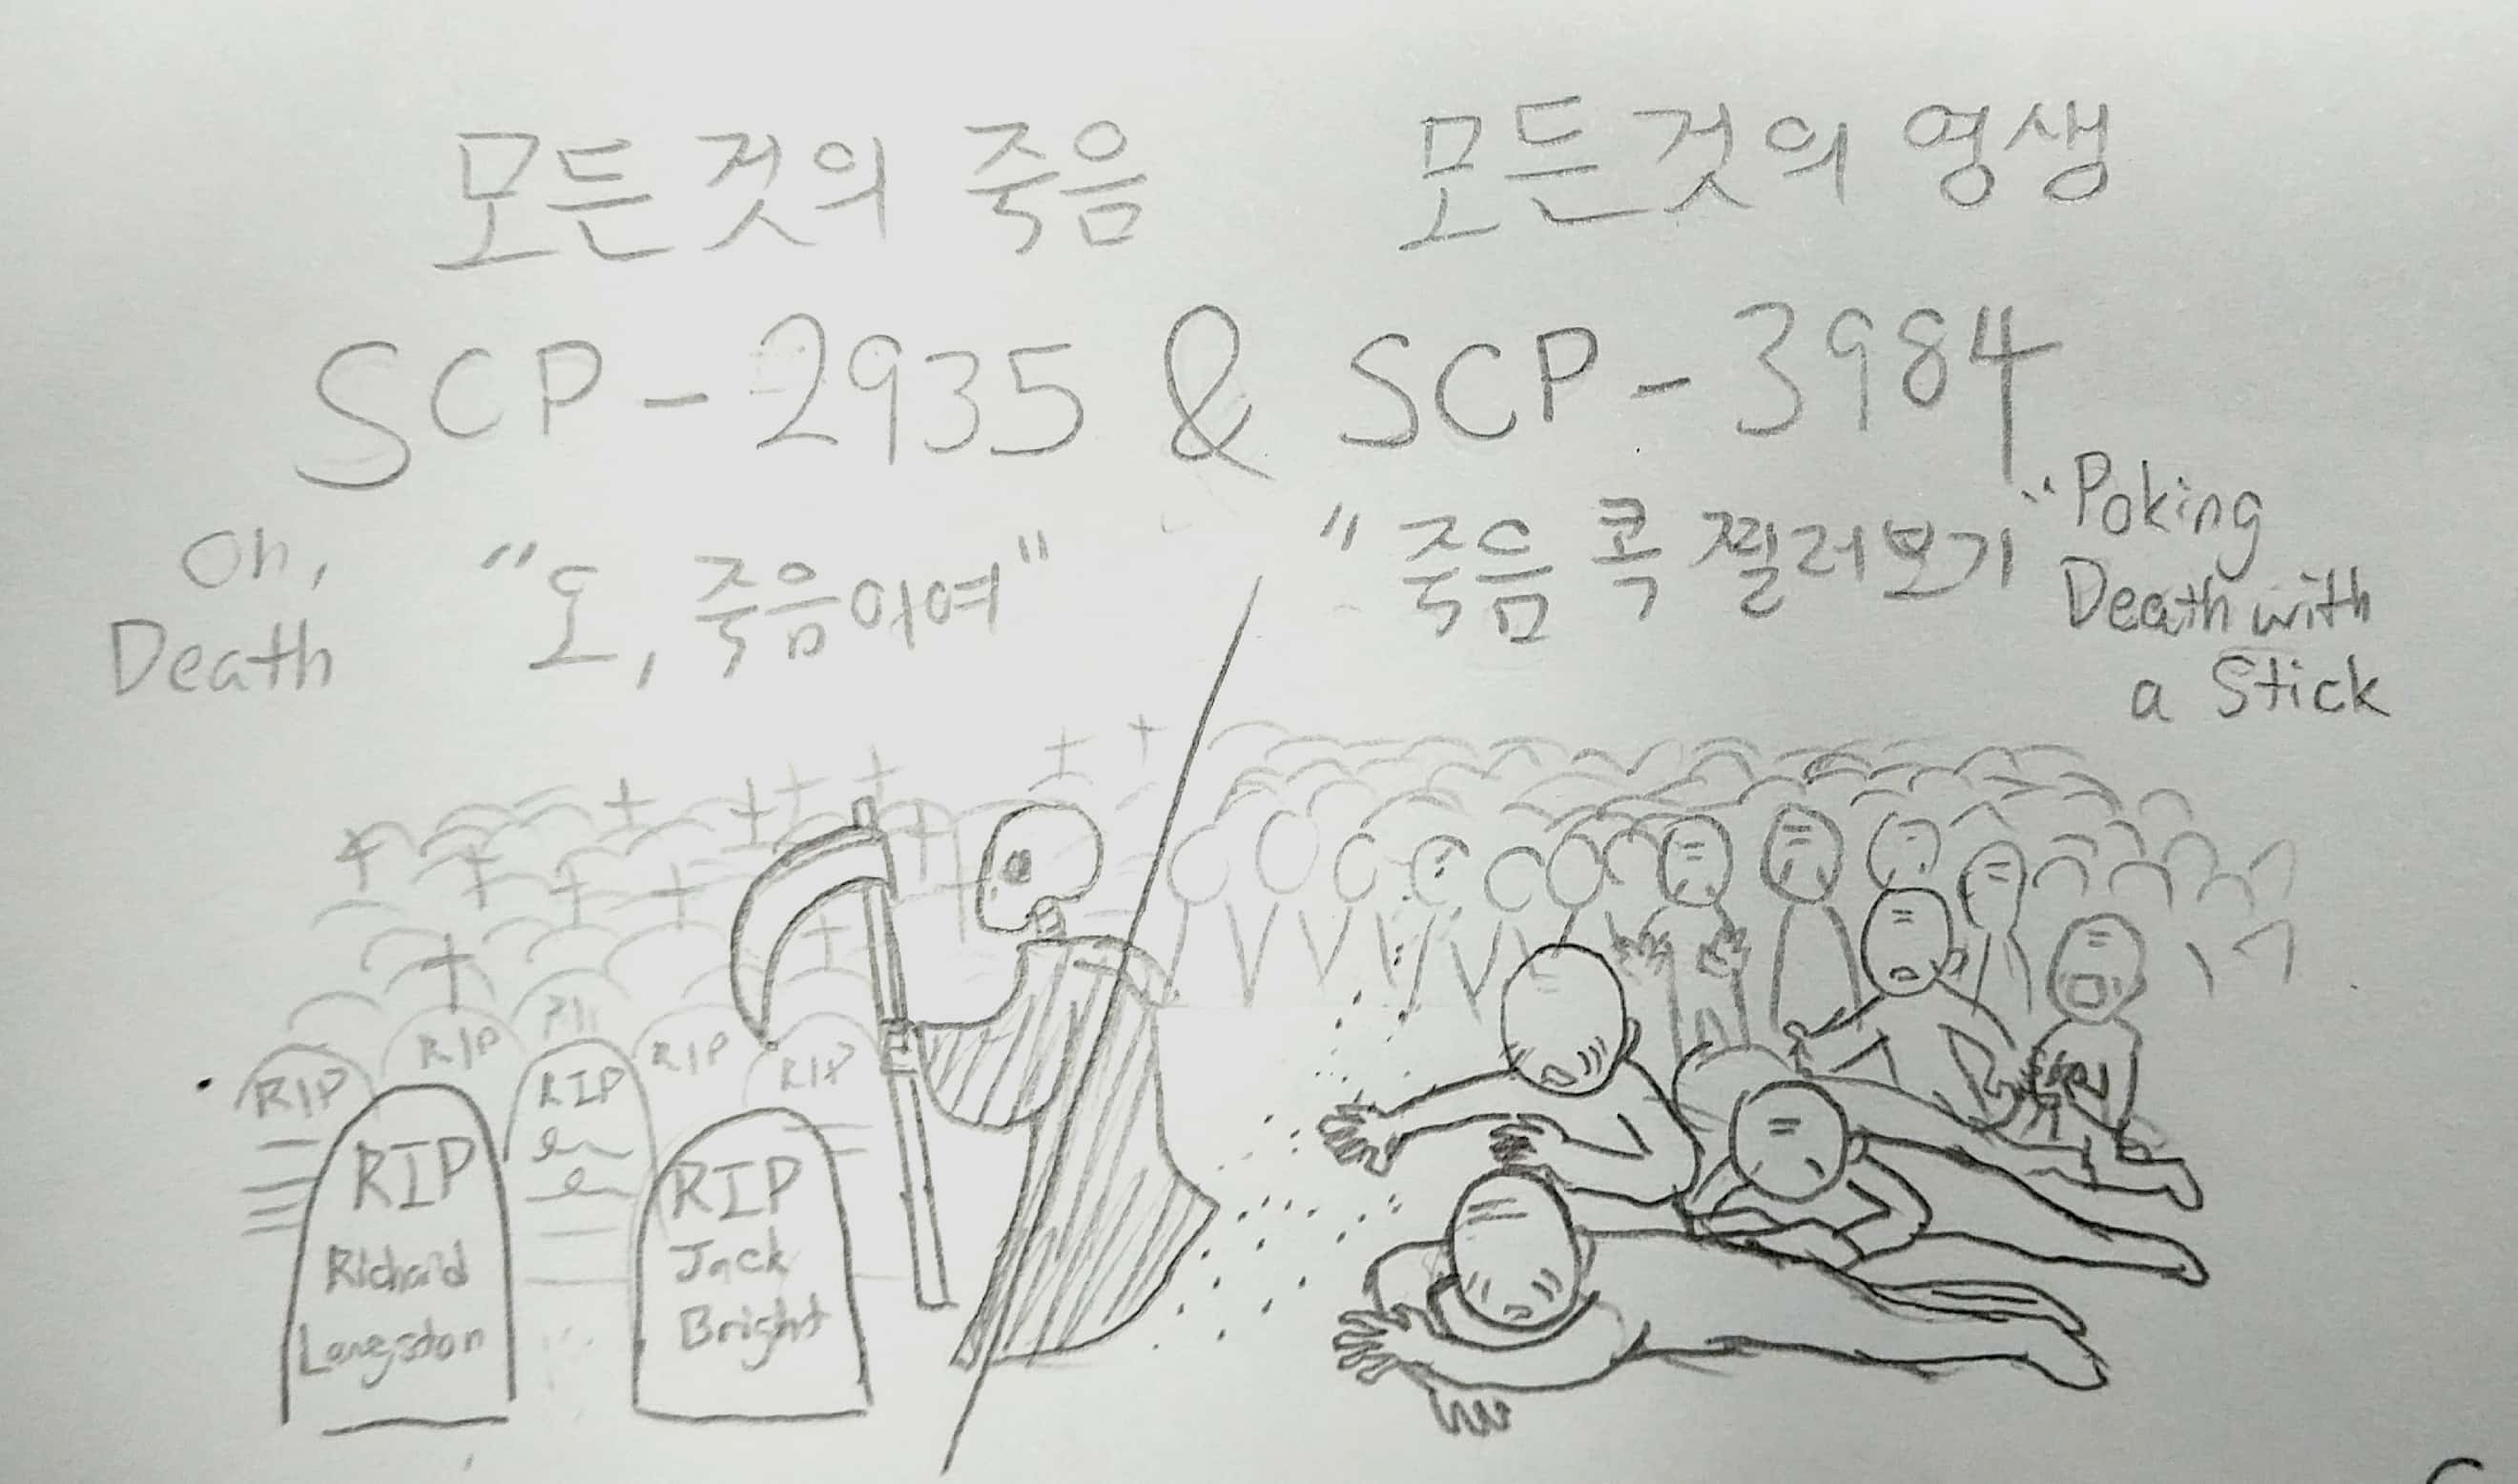 SCP-2935%20%26%203984